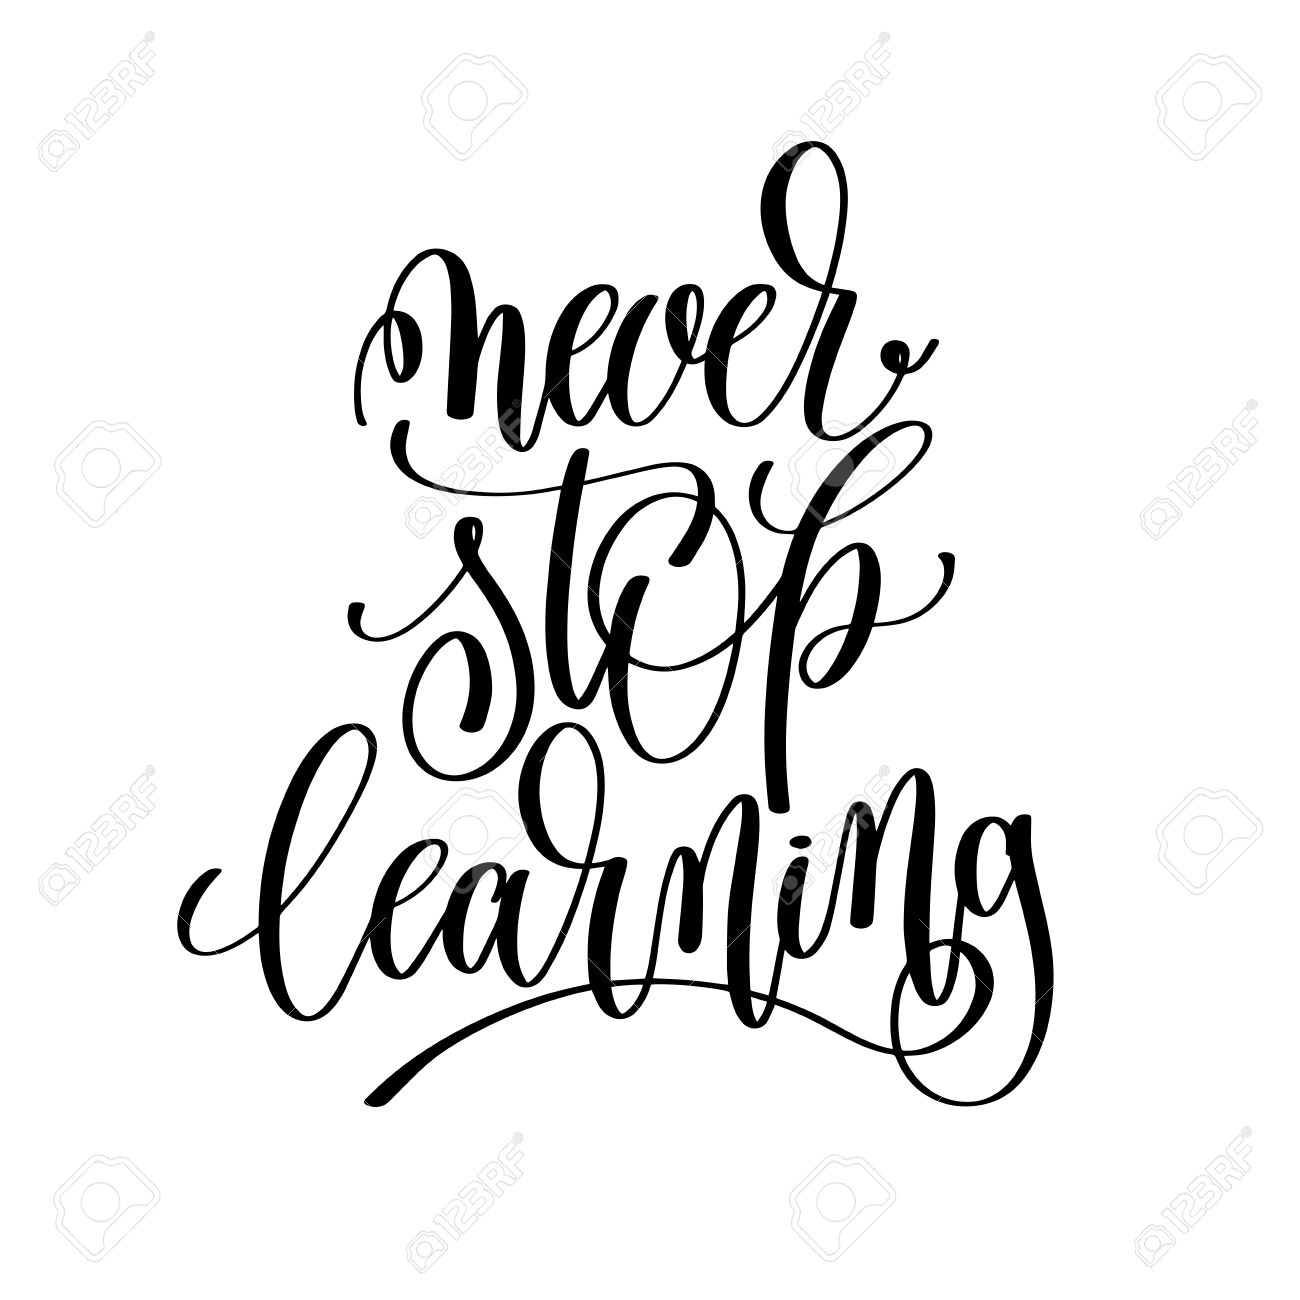 Never Stop Learning Black And White Hand Written Lettering Positive Quote Motivation Inspiration Modern